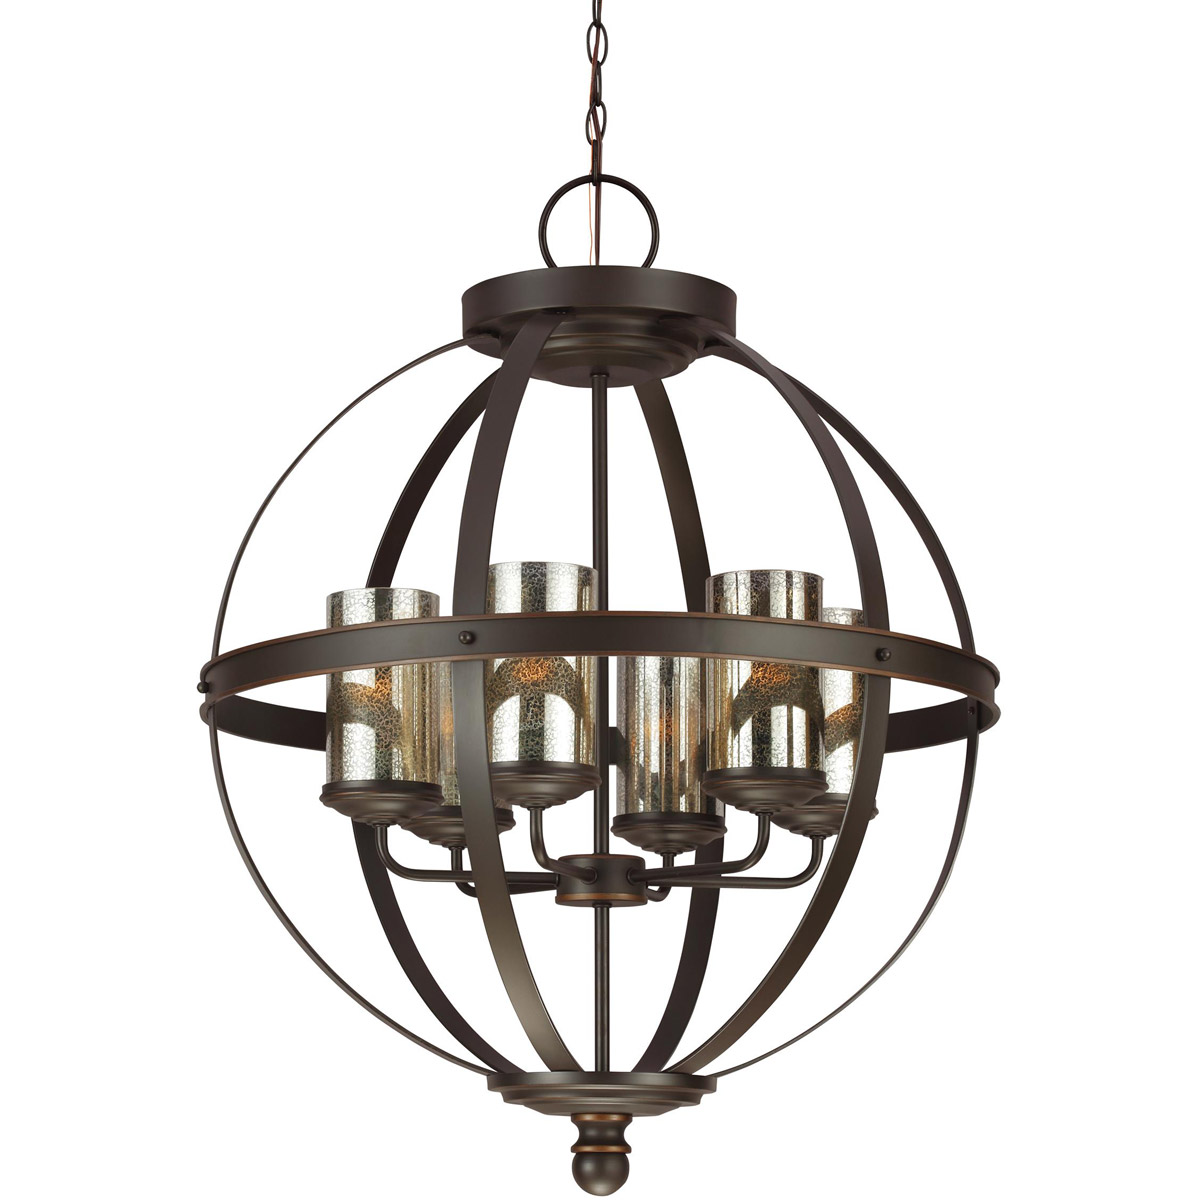 Sea Gull Steel Sfera Chandeliers